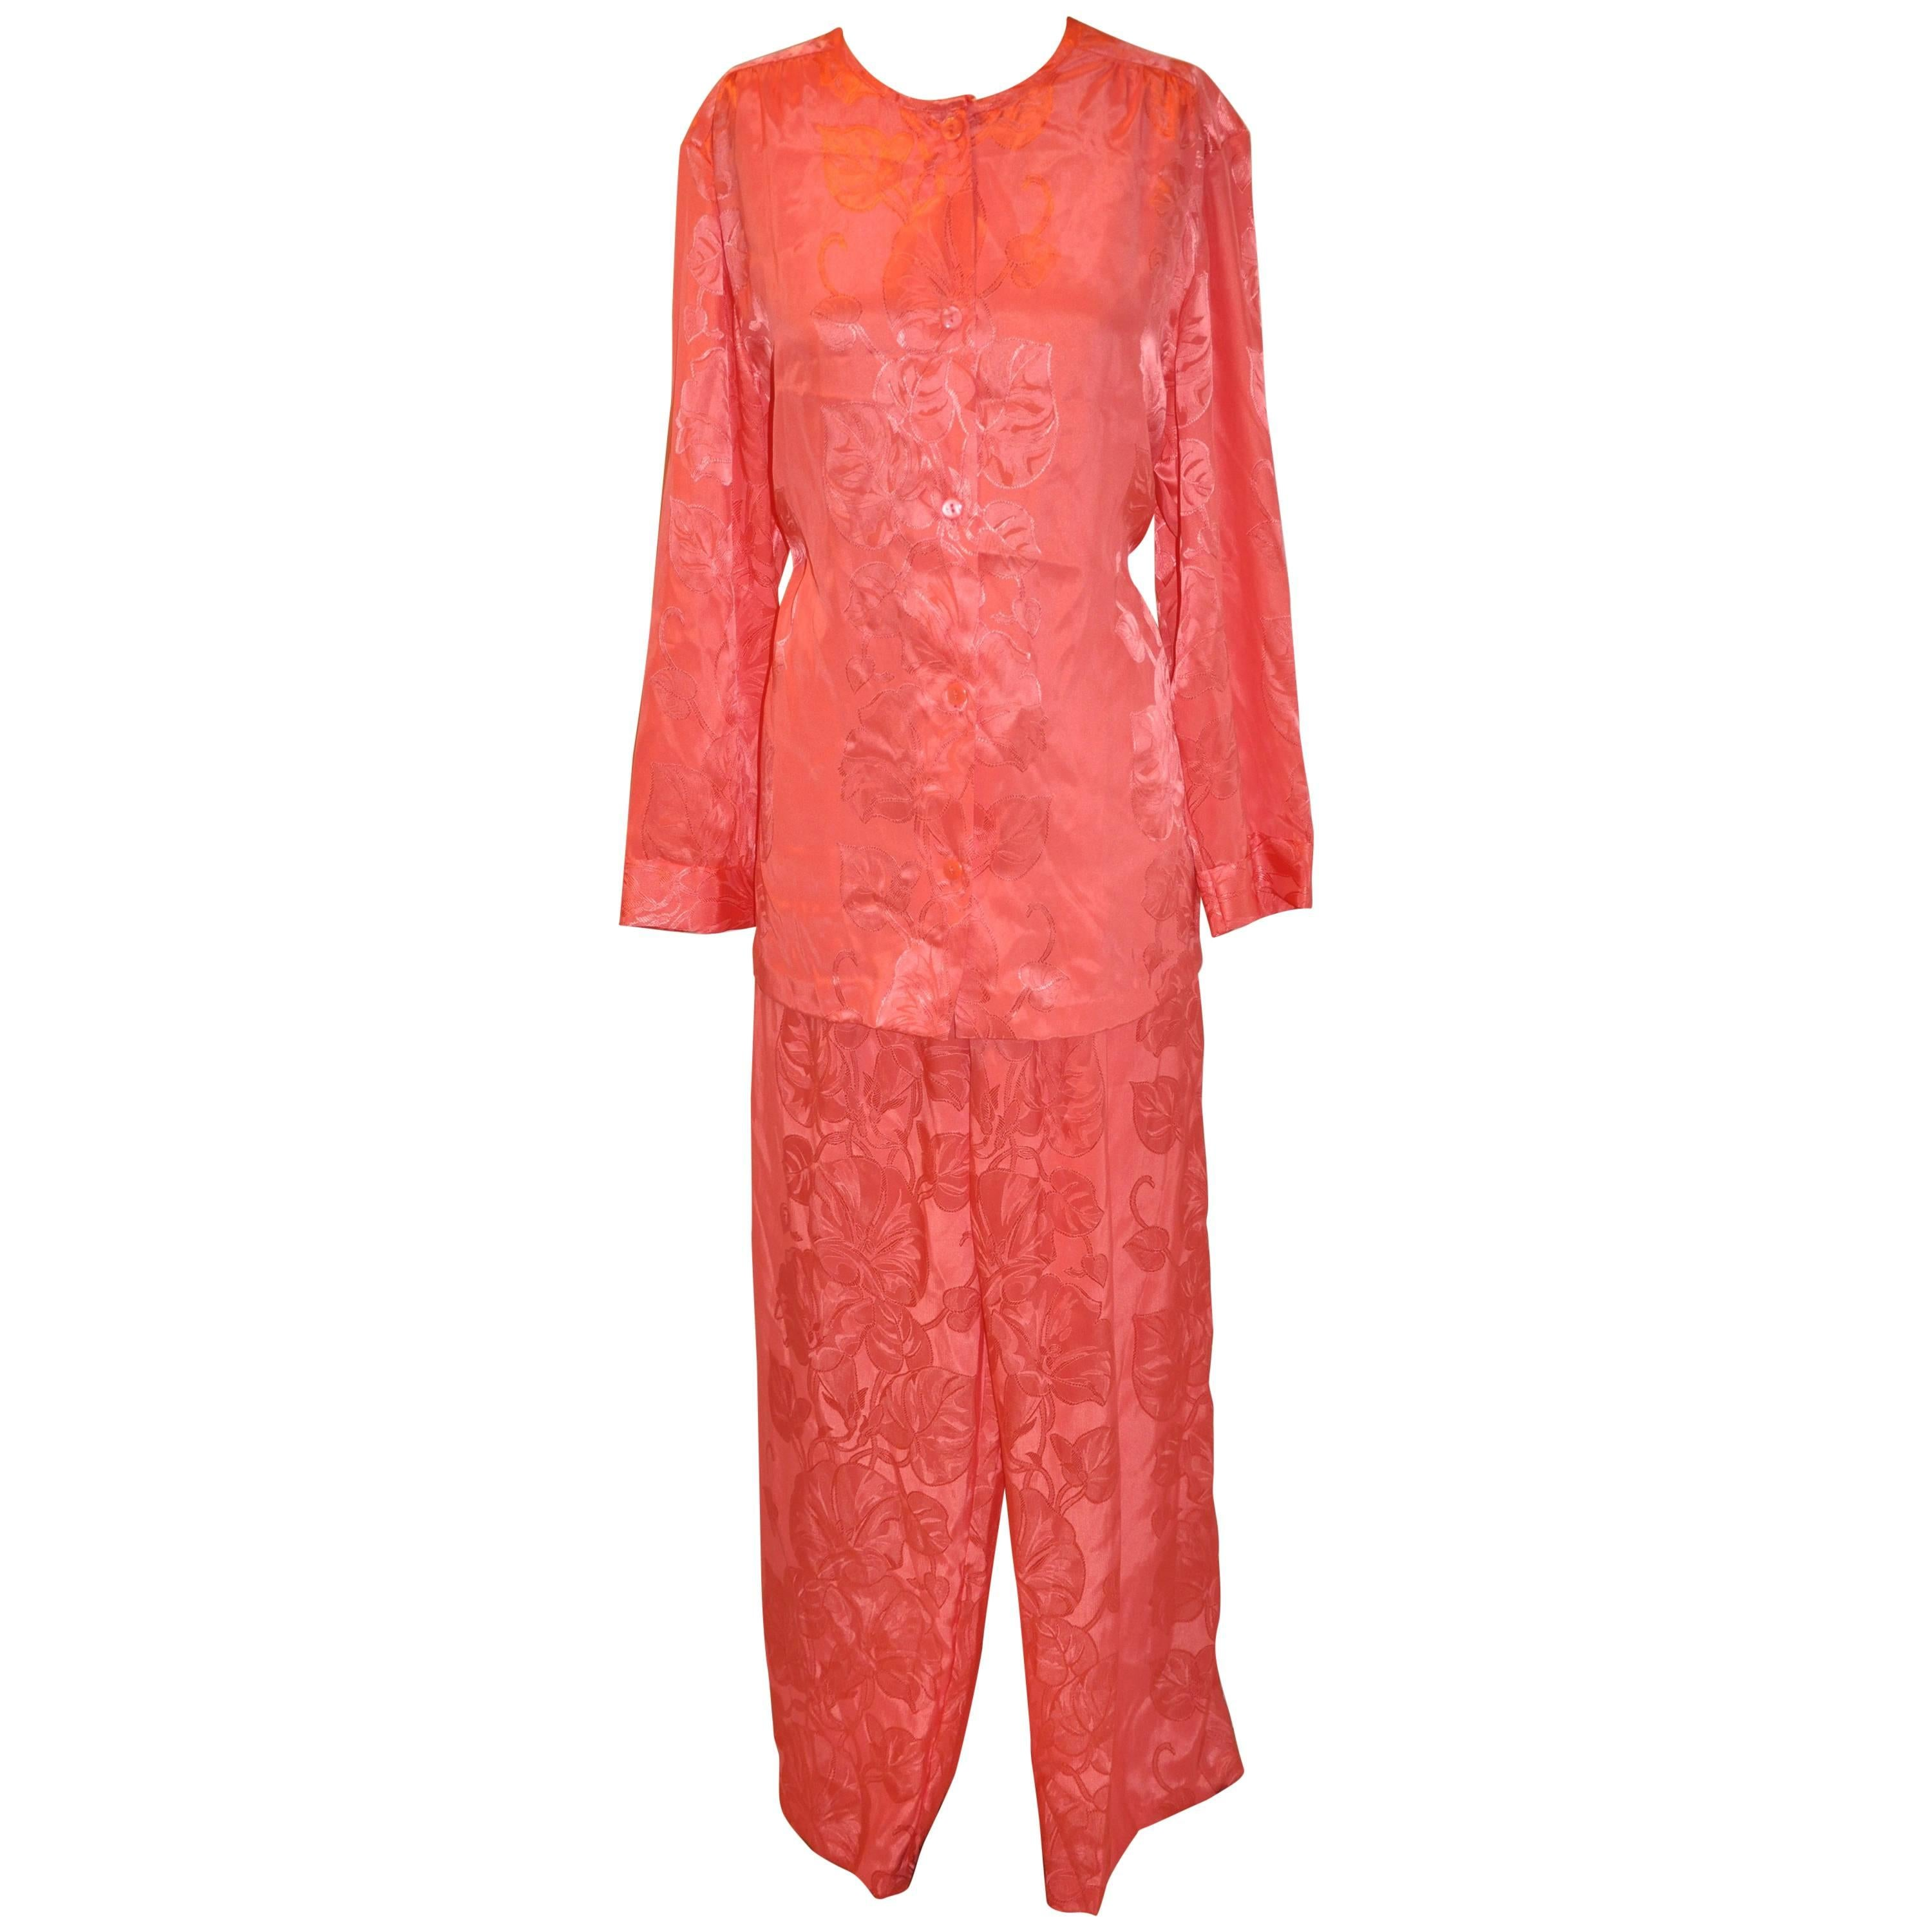 0486ec6aca8eb Natori Coral Floral Button Top and Pant Lounge Ensemble For Sale at 1stdibs